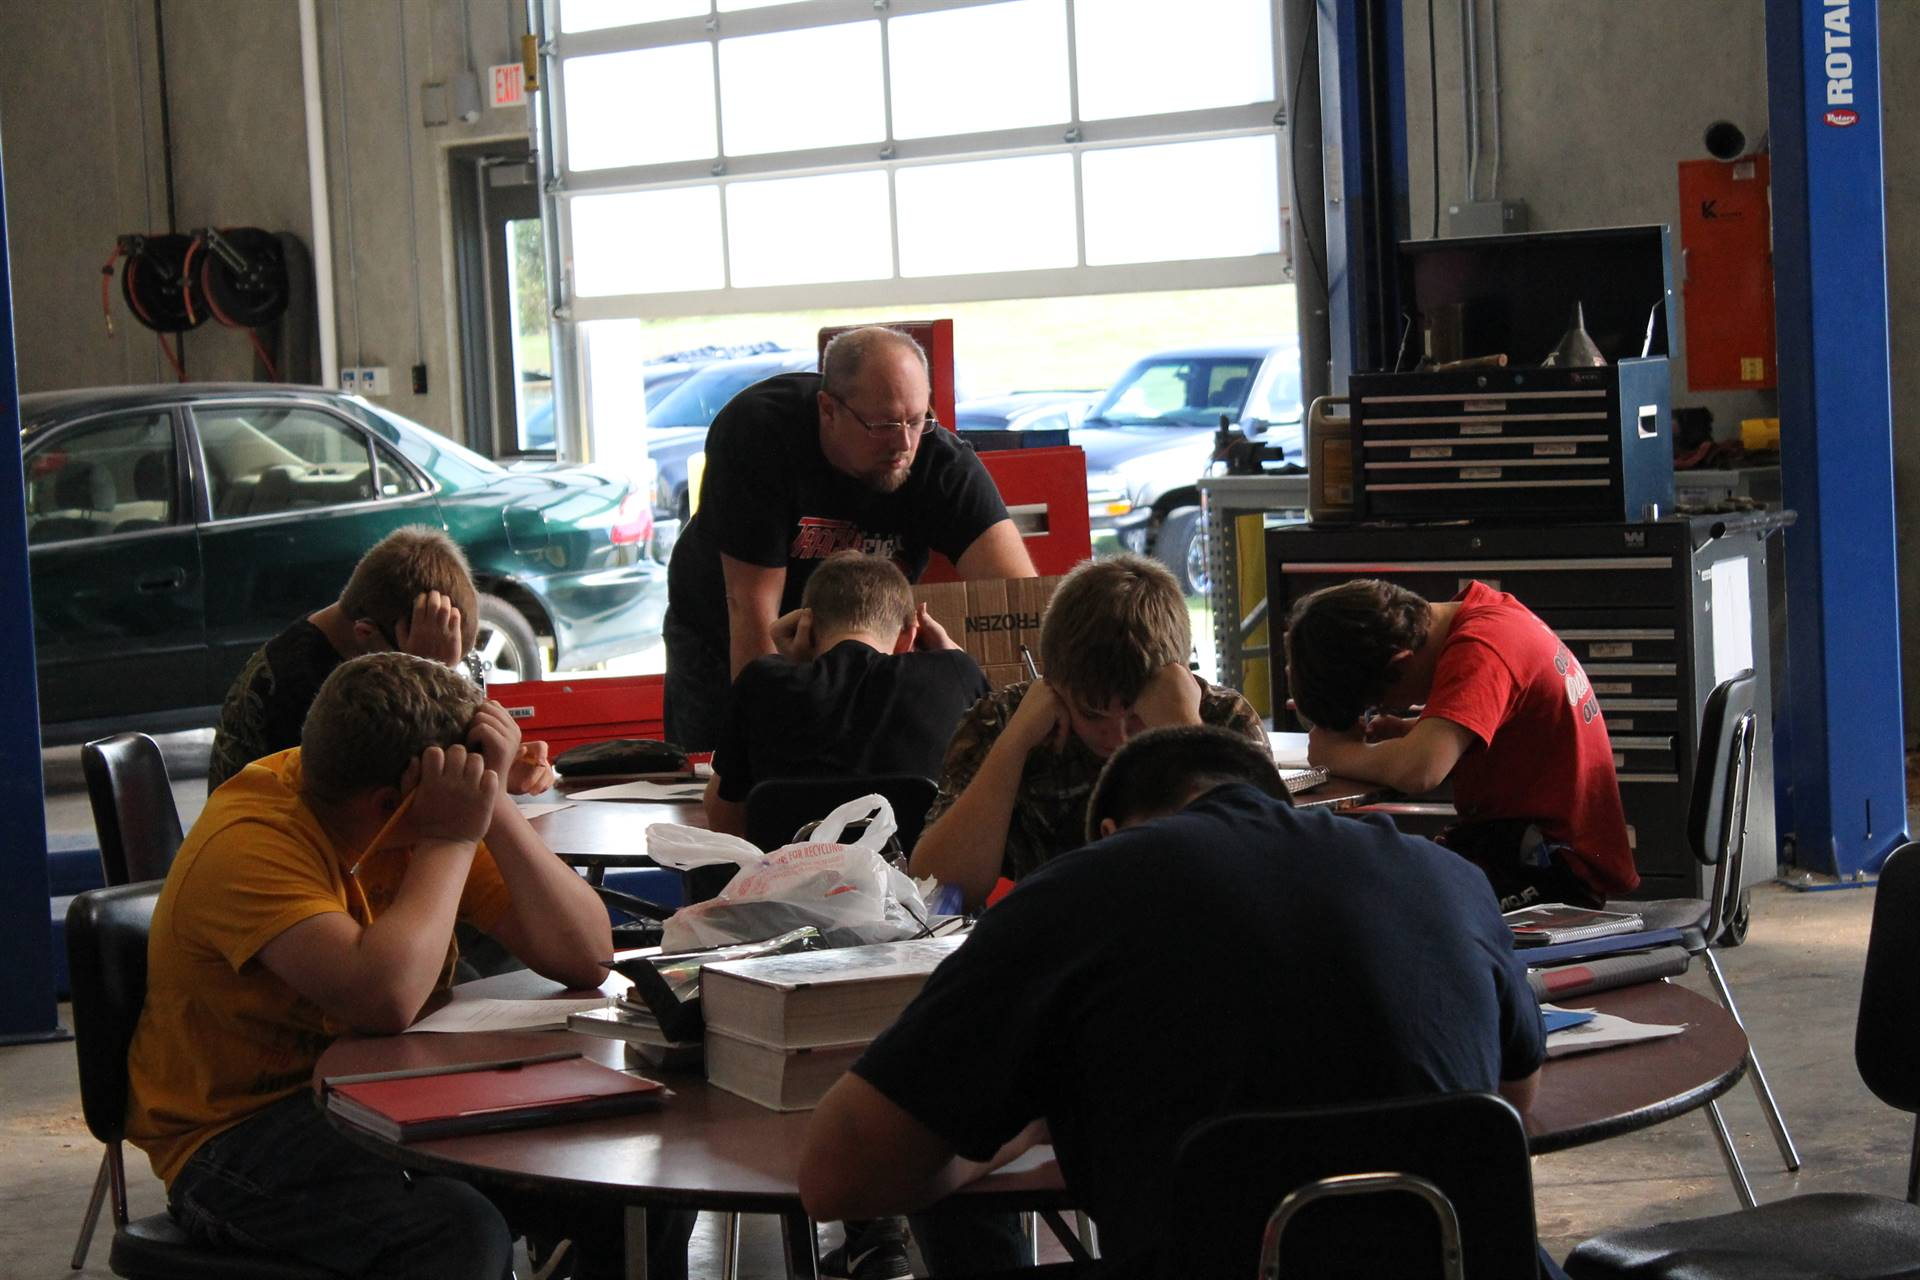 WDHS teacher Mr. Seay working with students in Auto class